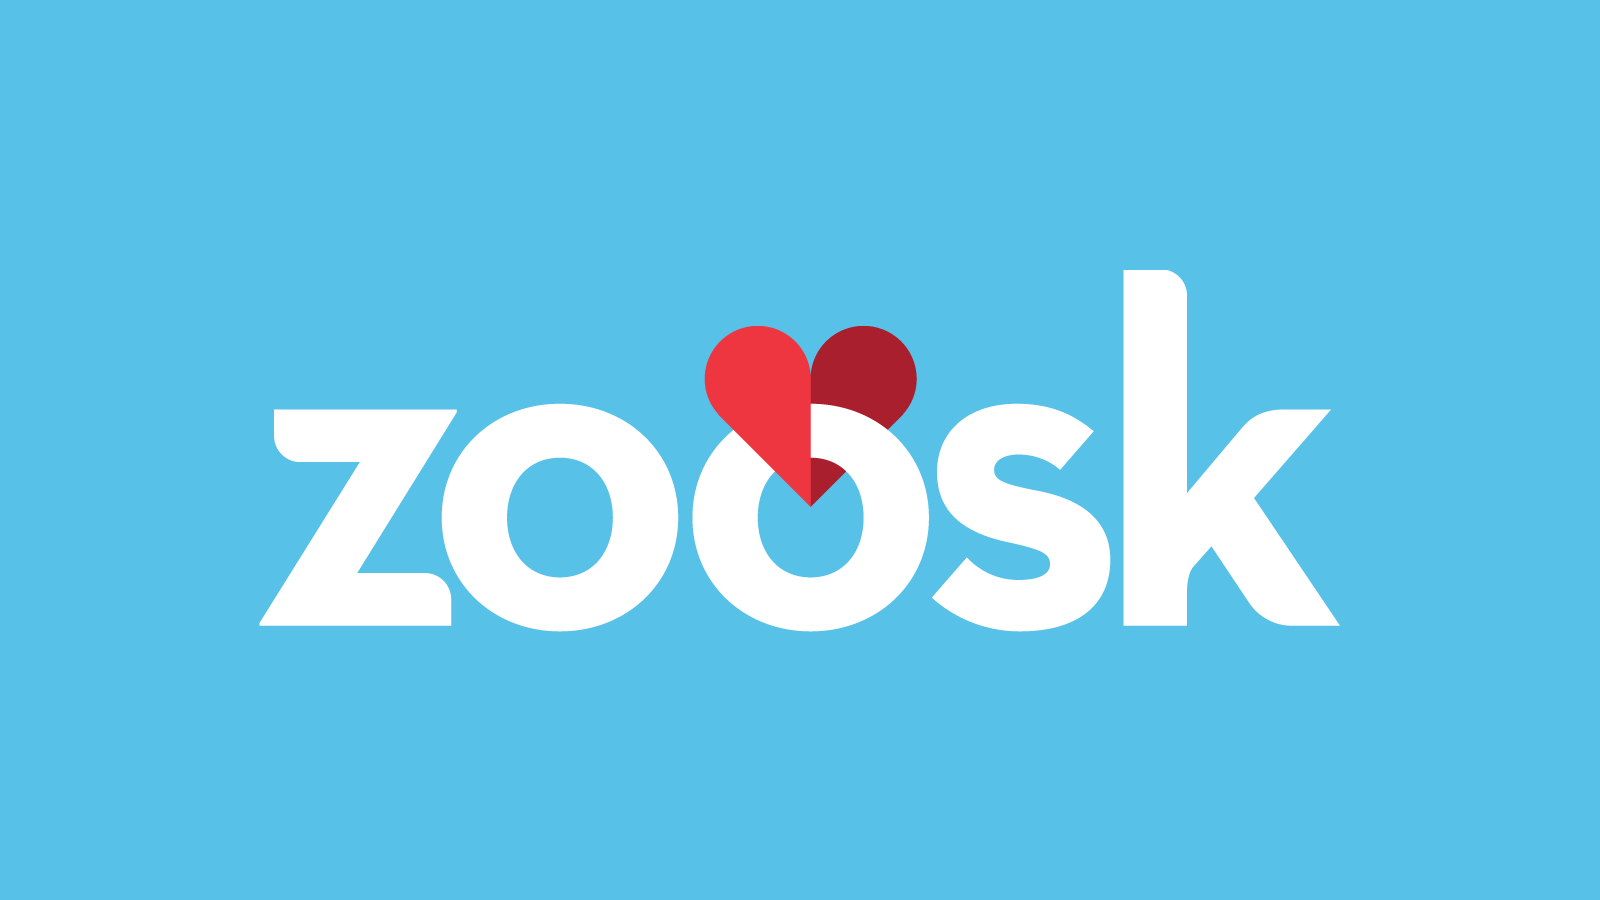 Zoosk Review 2020: Full Review That Helps To Find Love On